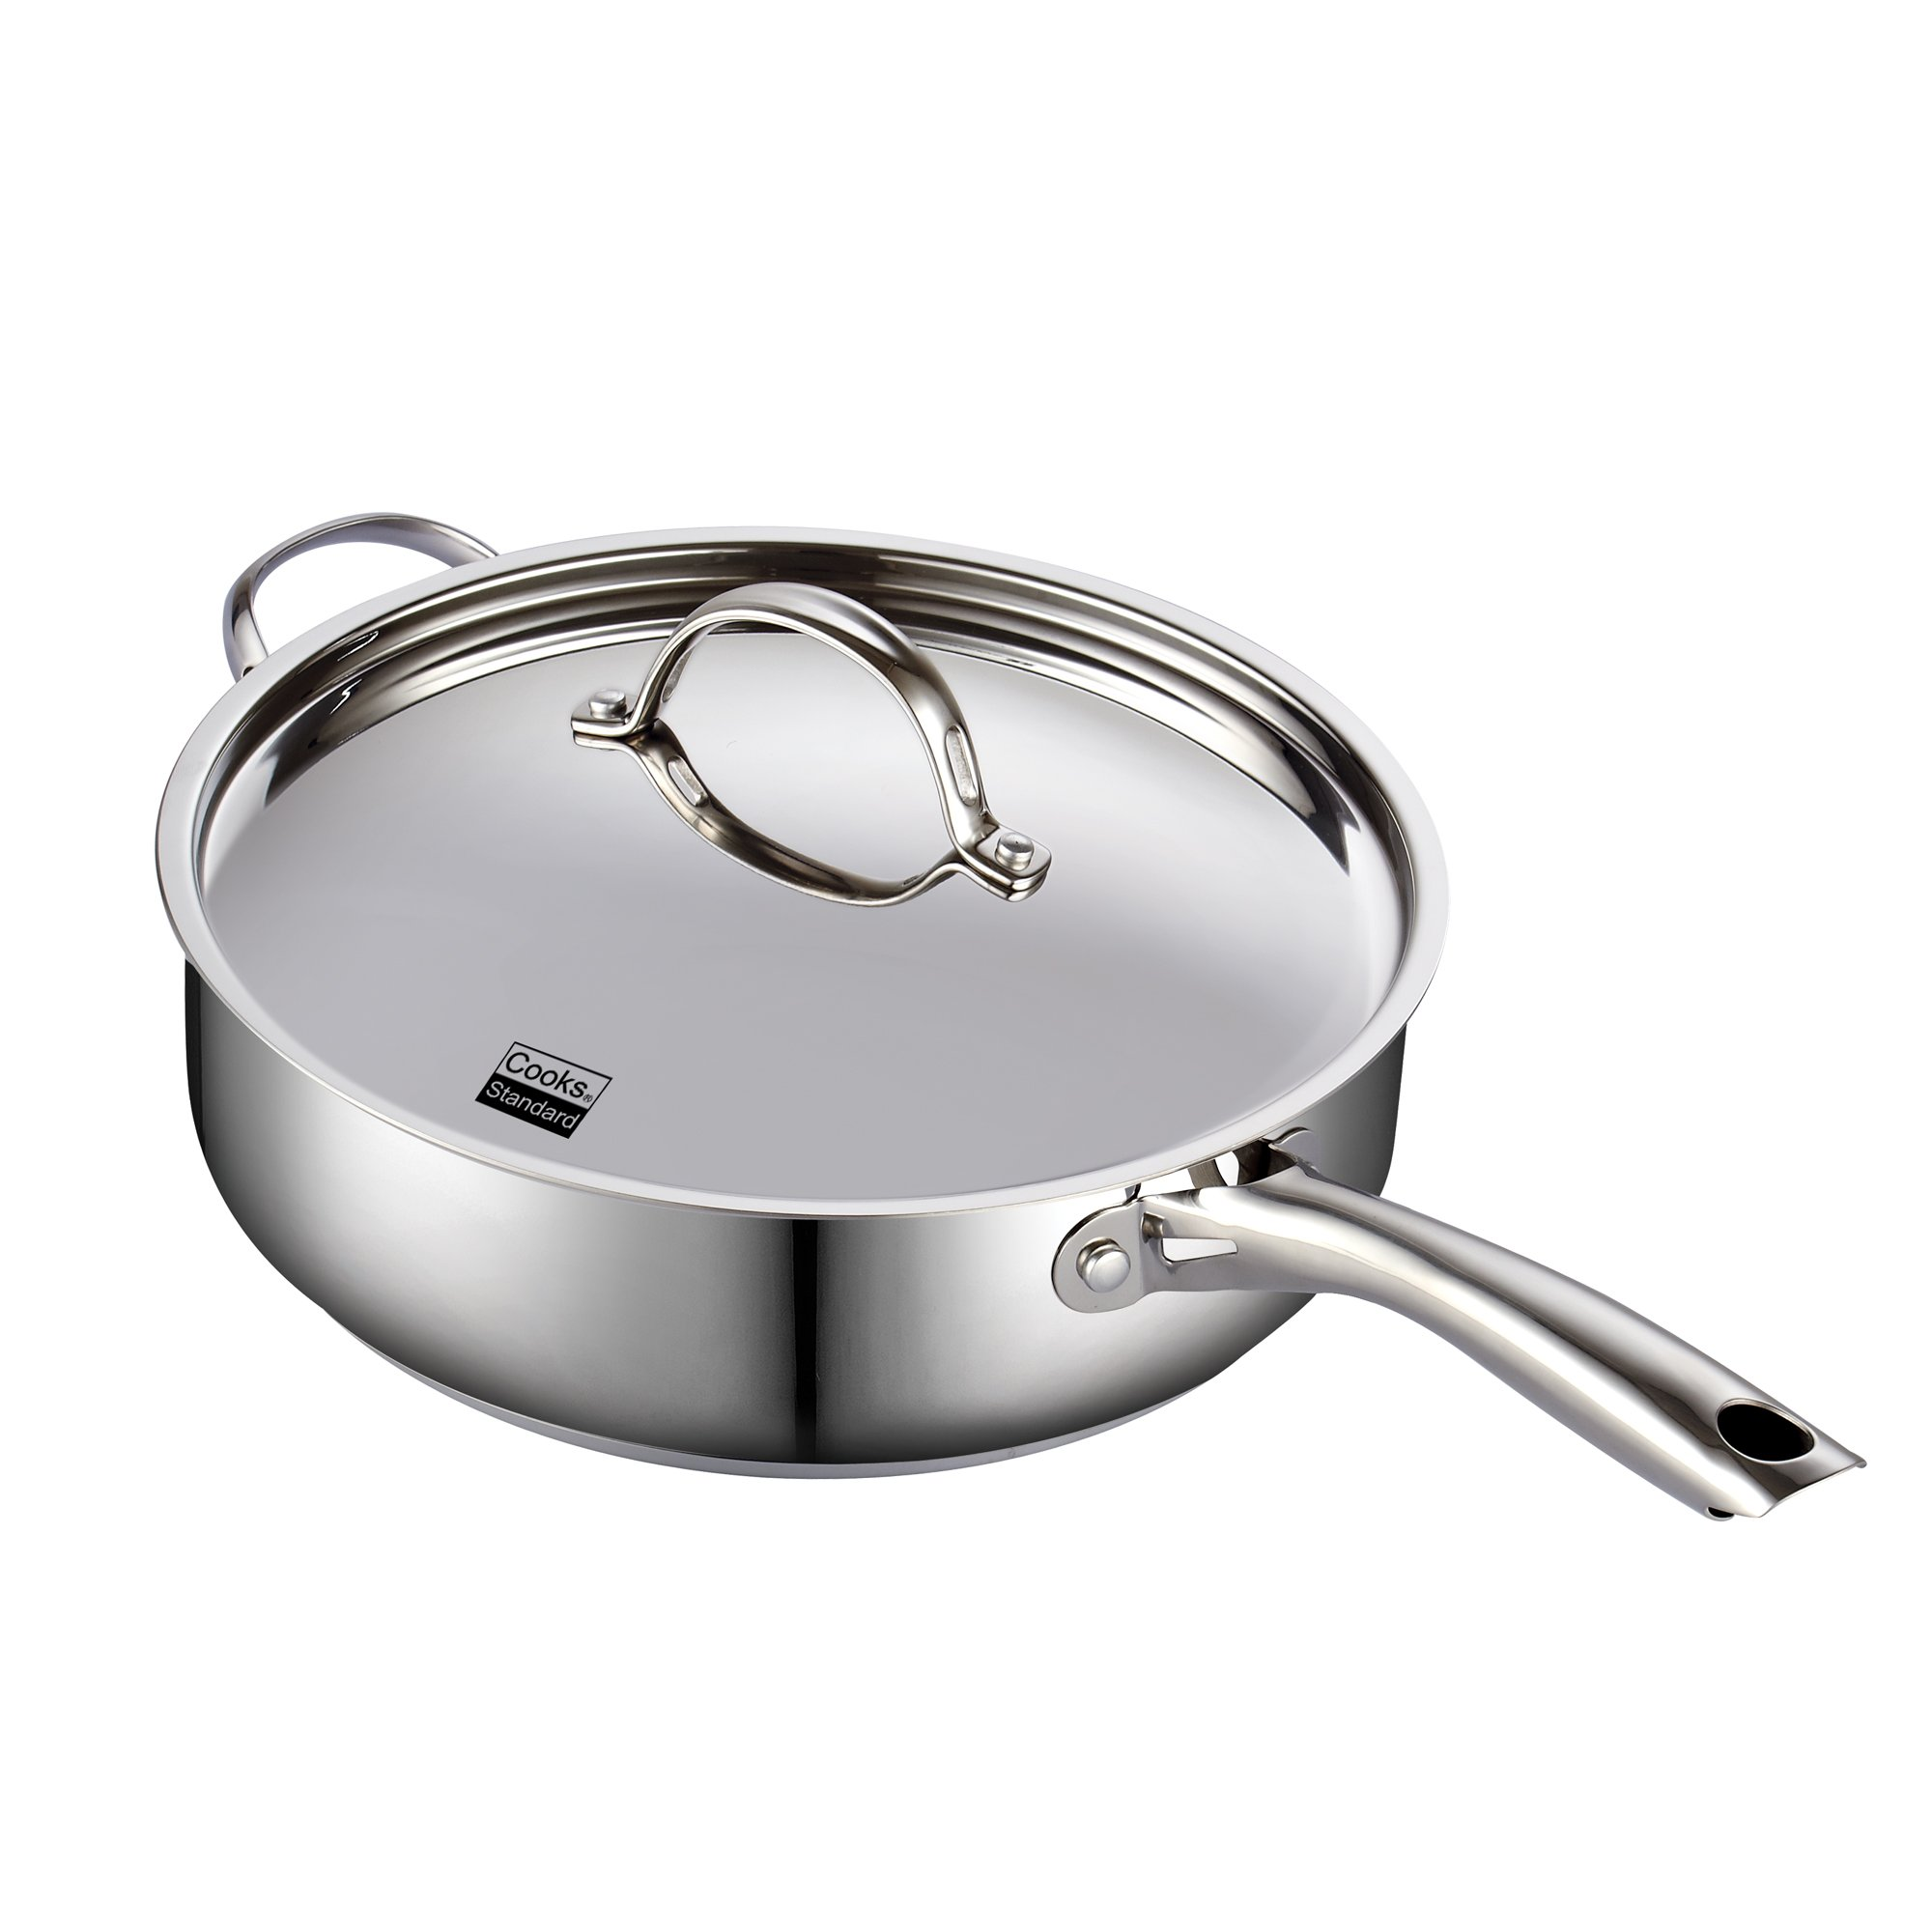 Cooks Standard 5 Quart/11-Inch Classic Stainless Steel Deep Saute Pan with Lid by Cooks Standard